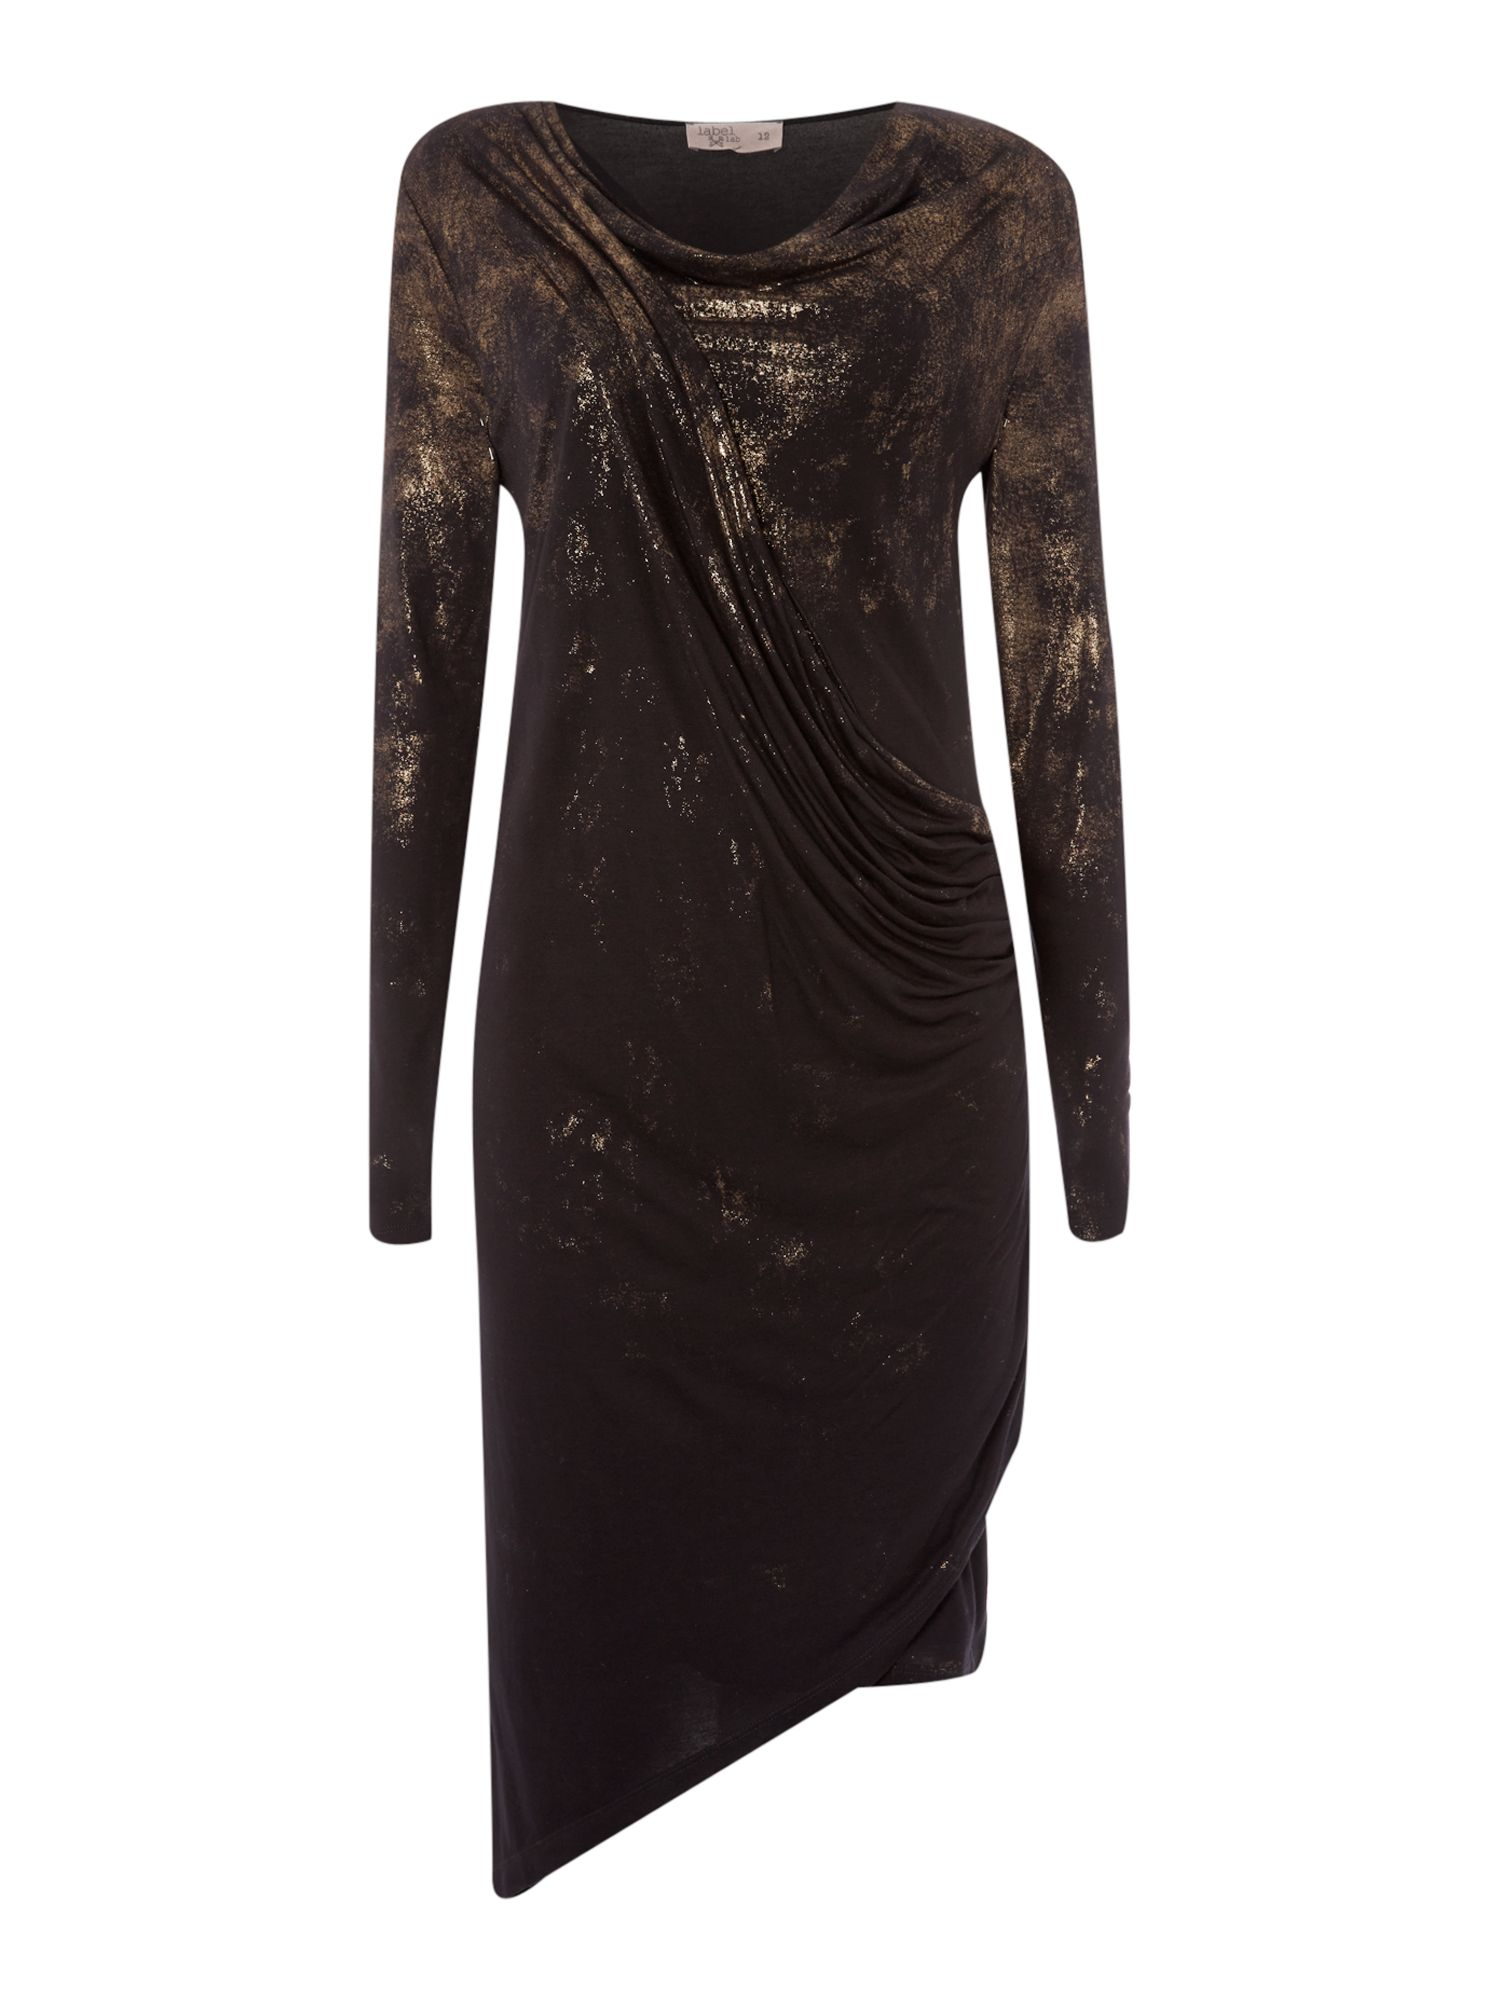 Distressed foil print dress